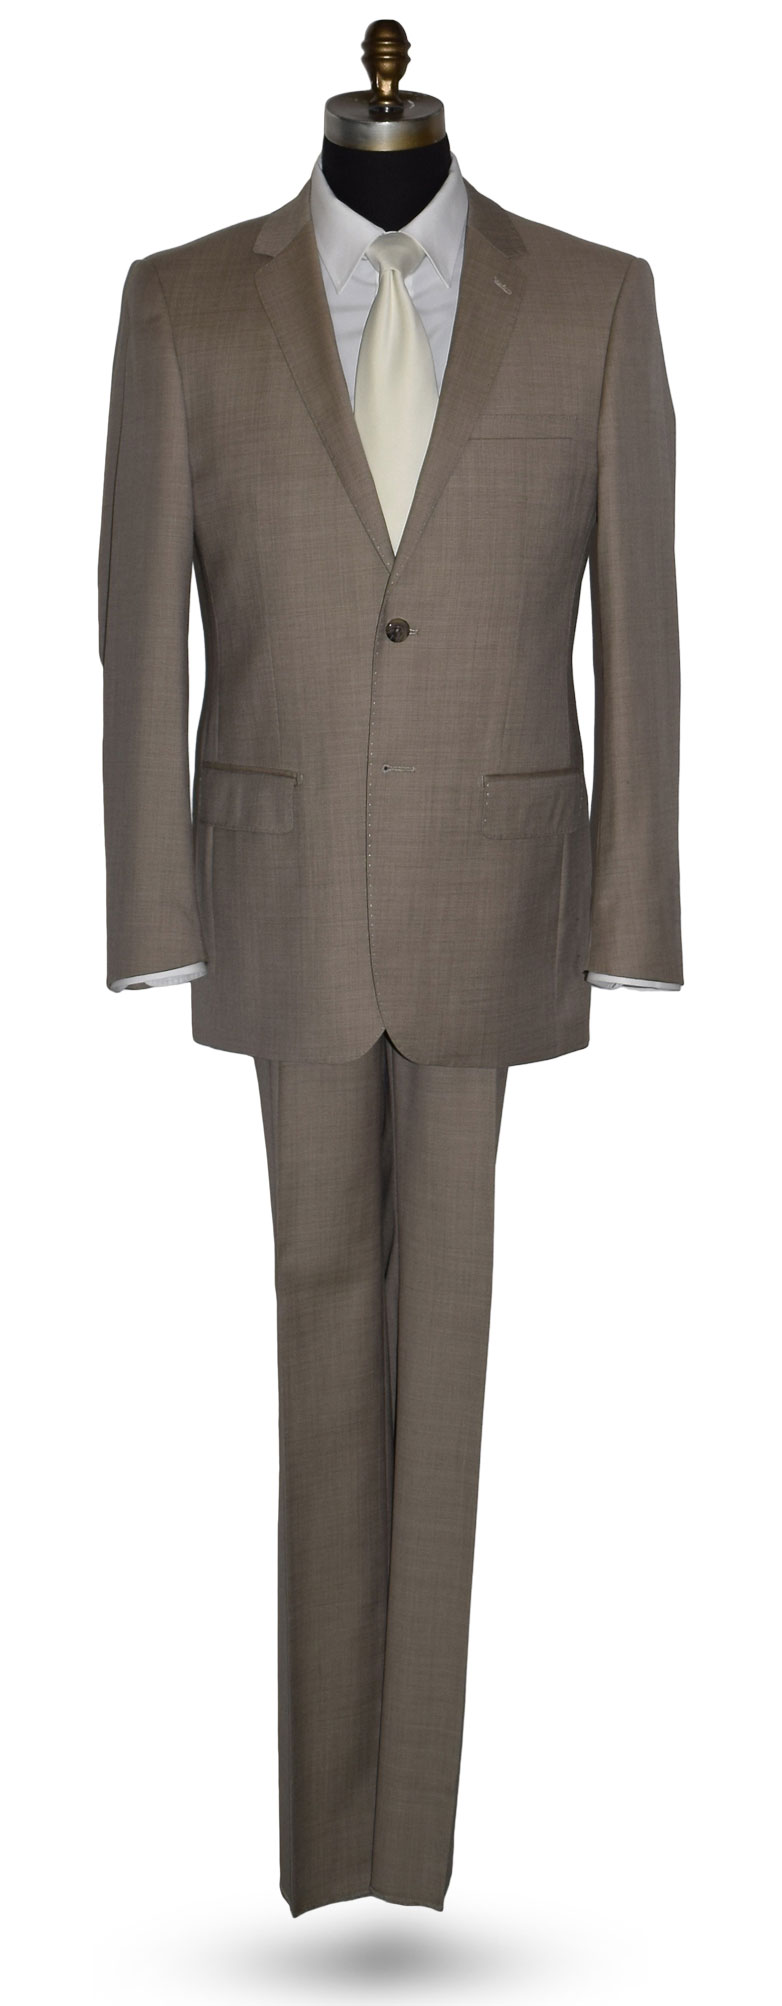 Biscotti Tan Suit Coat and Pants Set